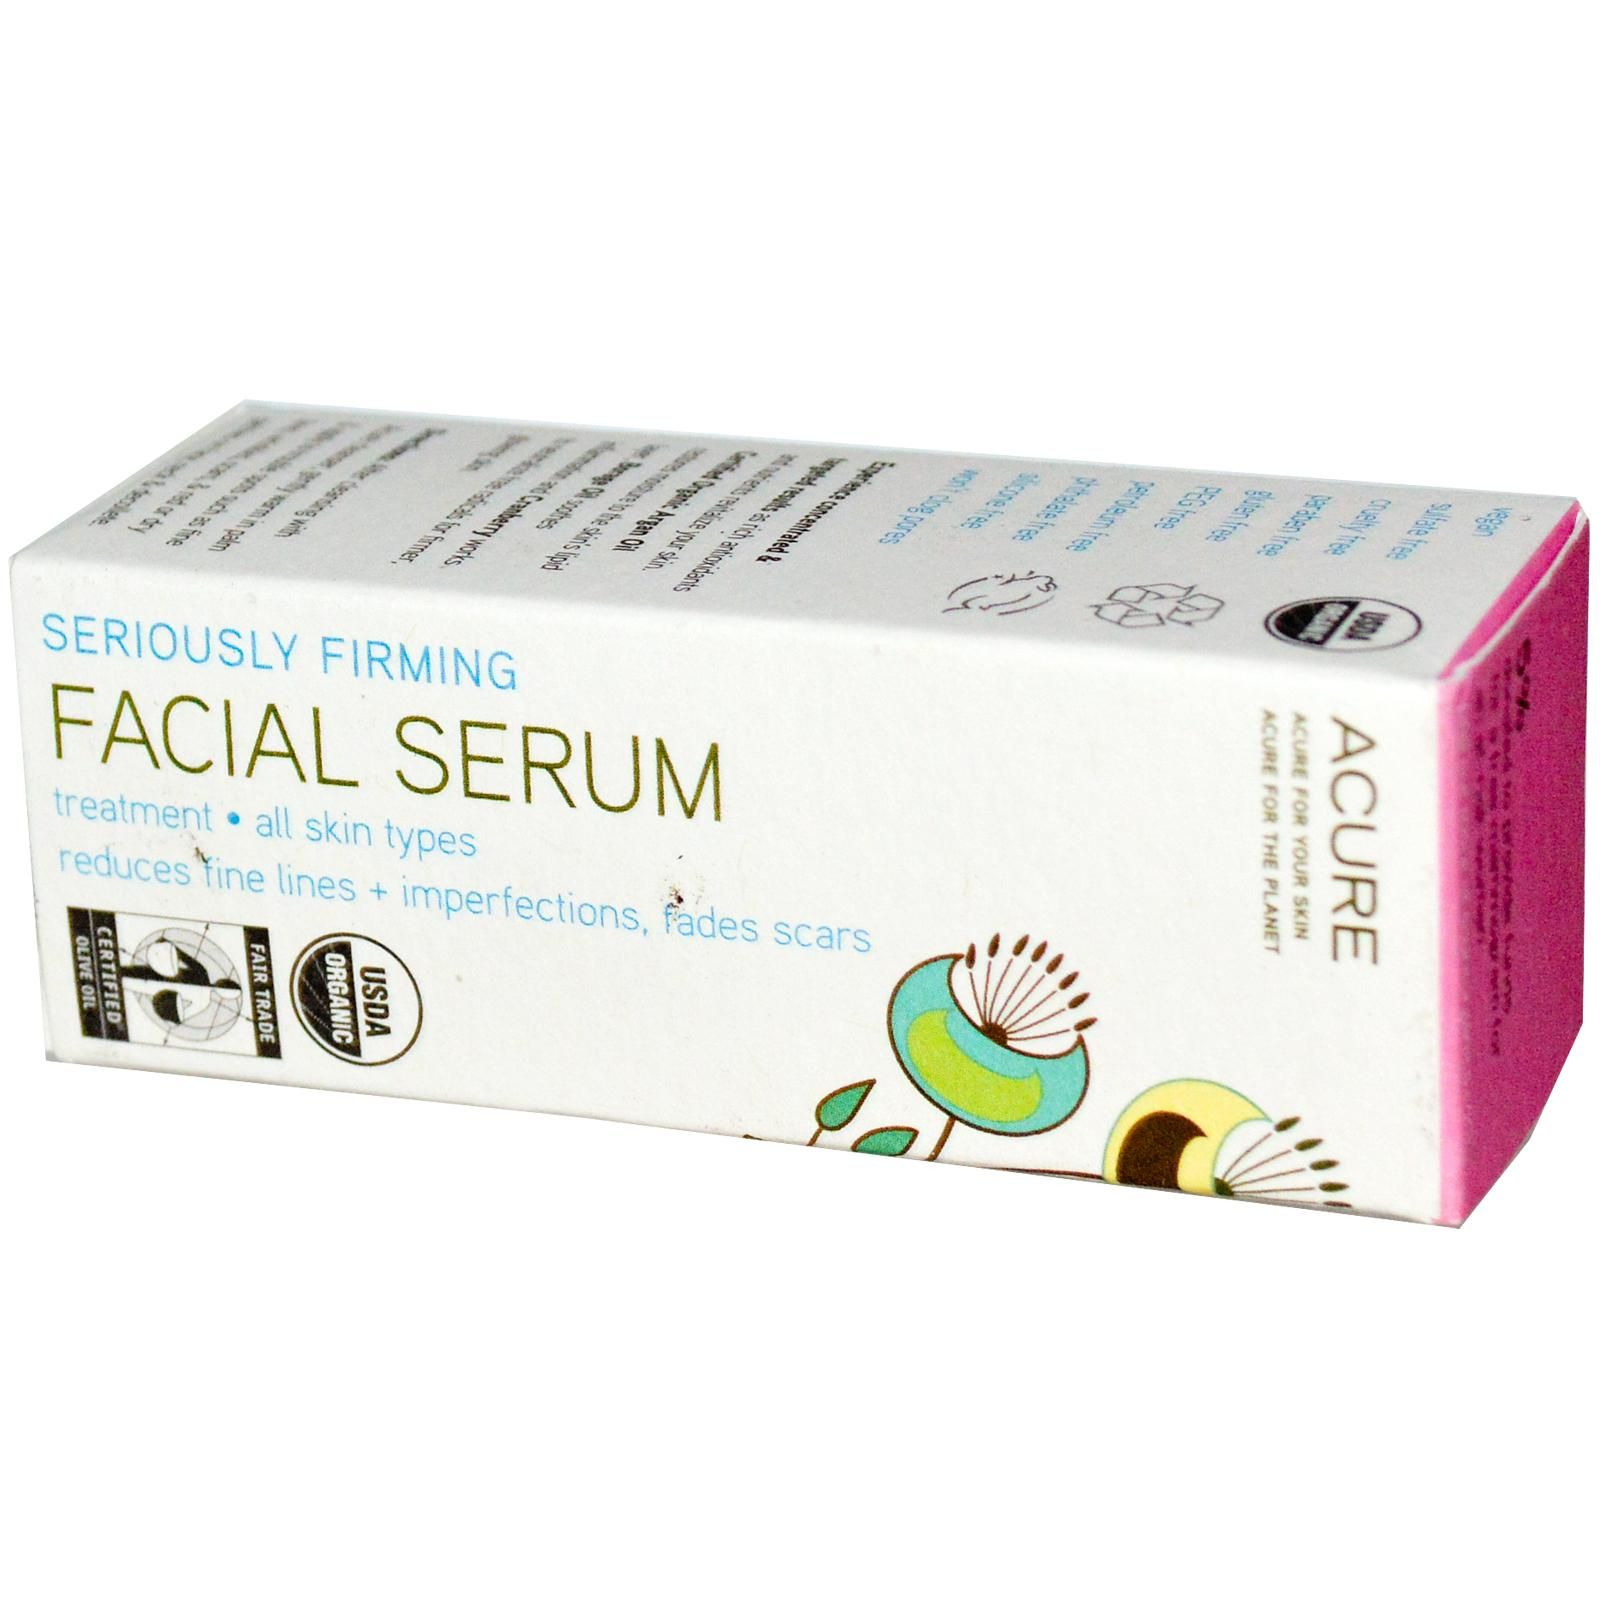 Seriously Firming Facial Serum Acure